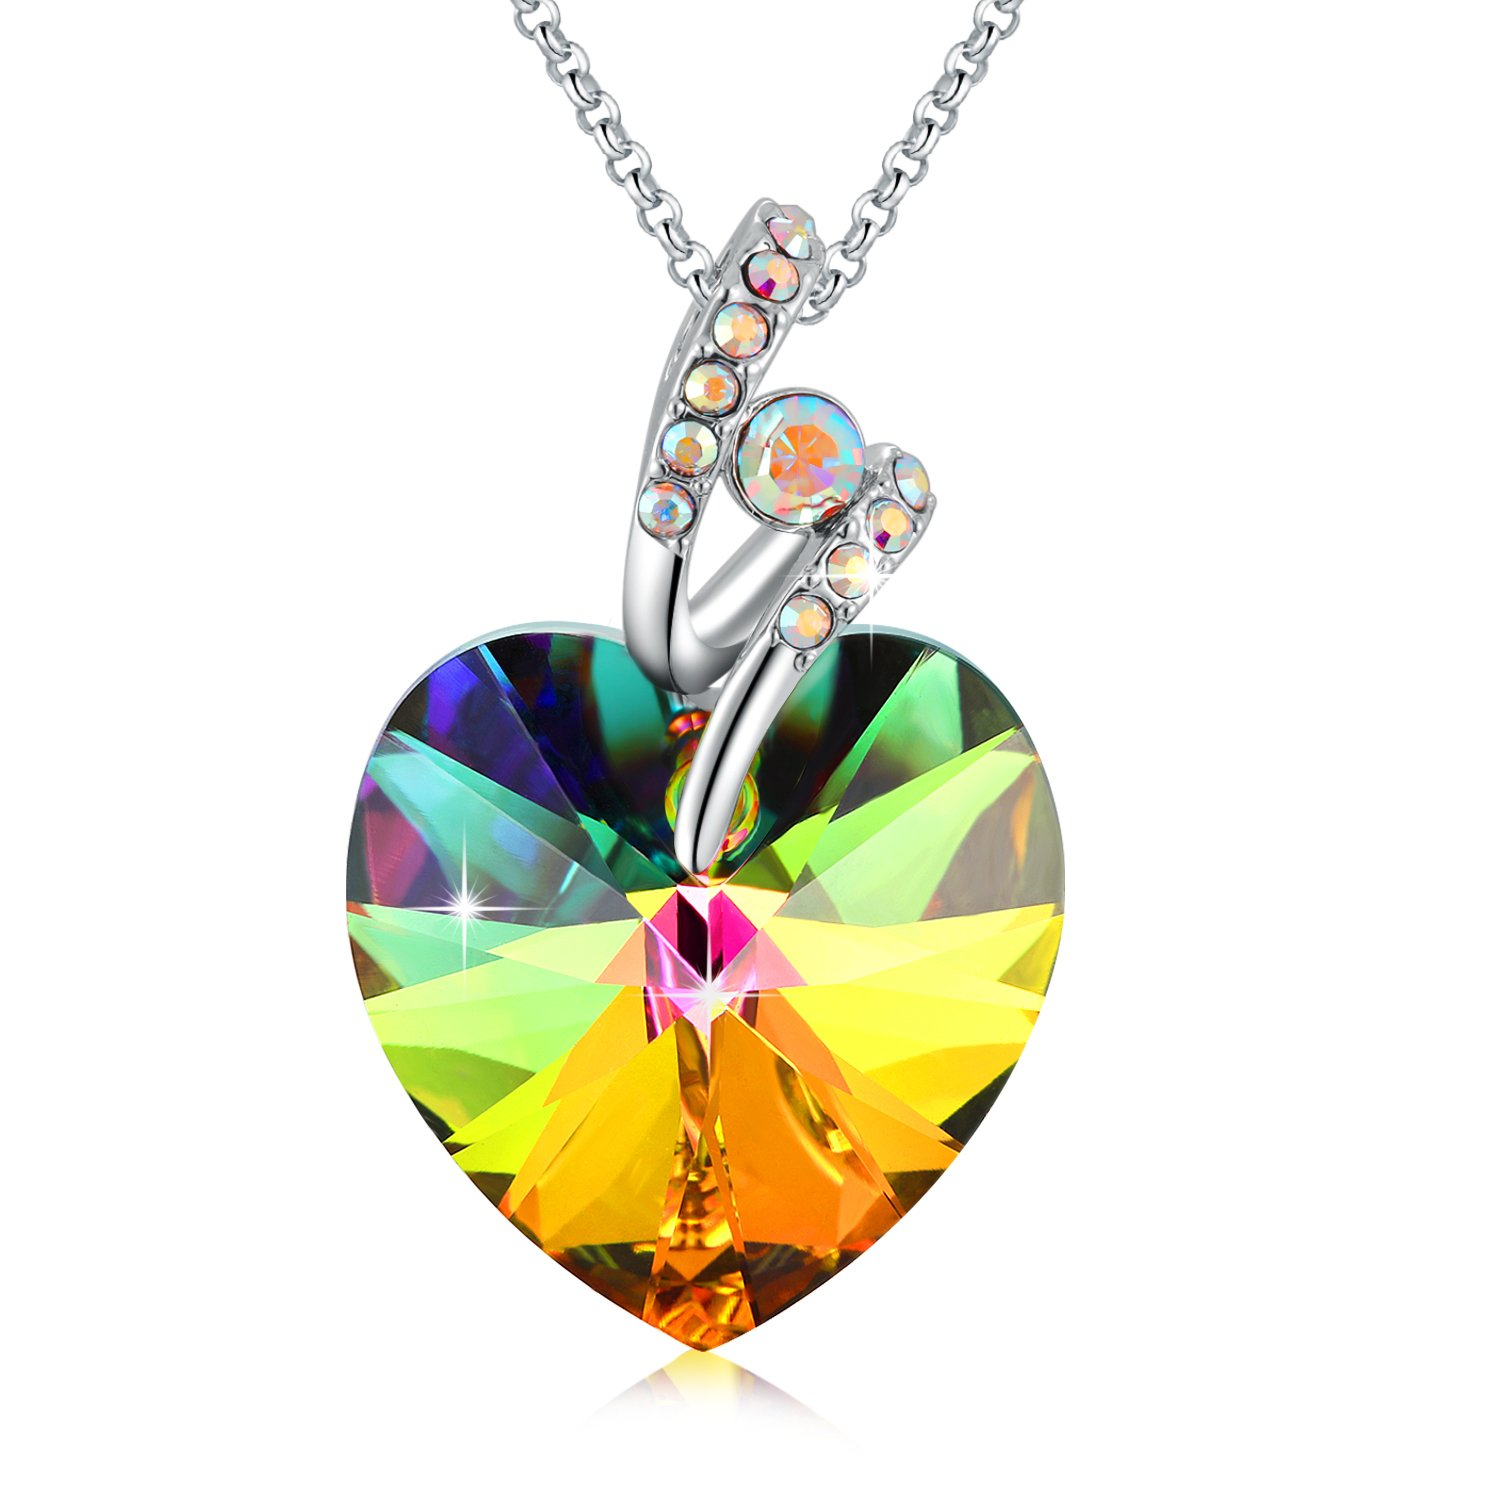 Color Changing Heart Shaped Necklace Rainbow Color Heart Earrings Birthstone Birthday Gifts SUE/'S SECRET Rainbow Heart Shaped Necklace//Earrings